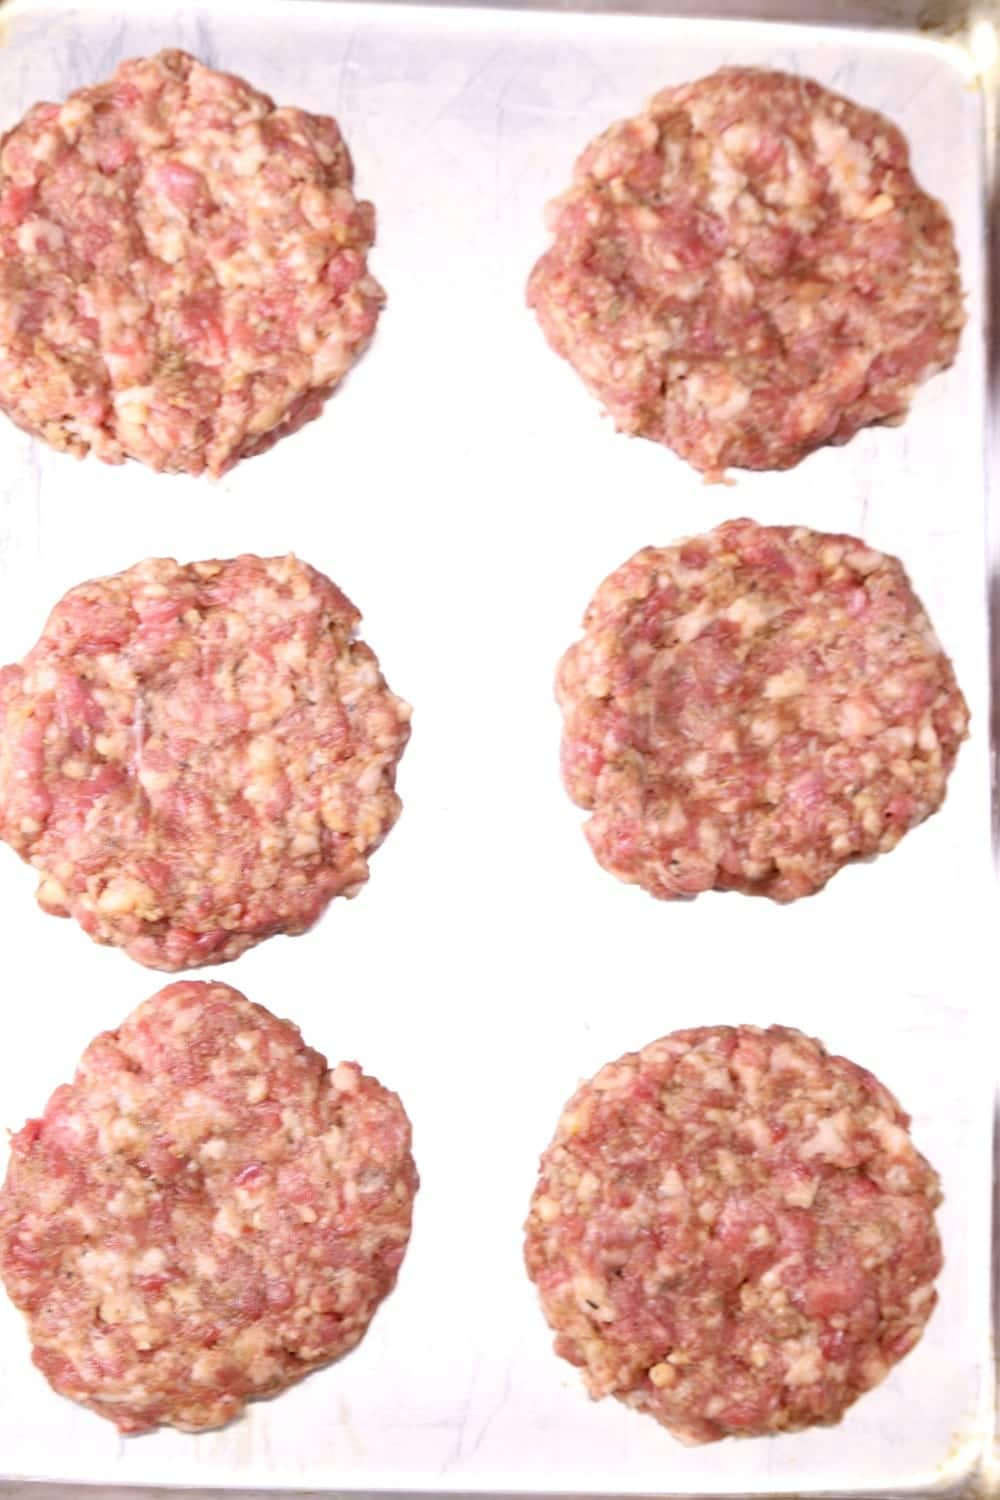 6 burger patties on a baking sheet ready to grill